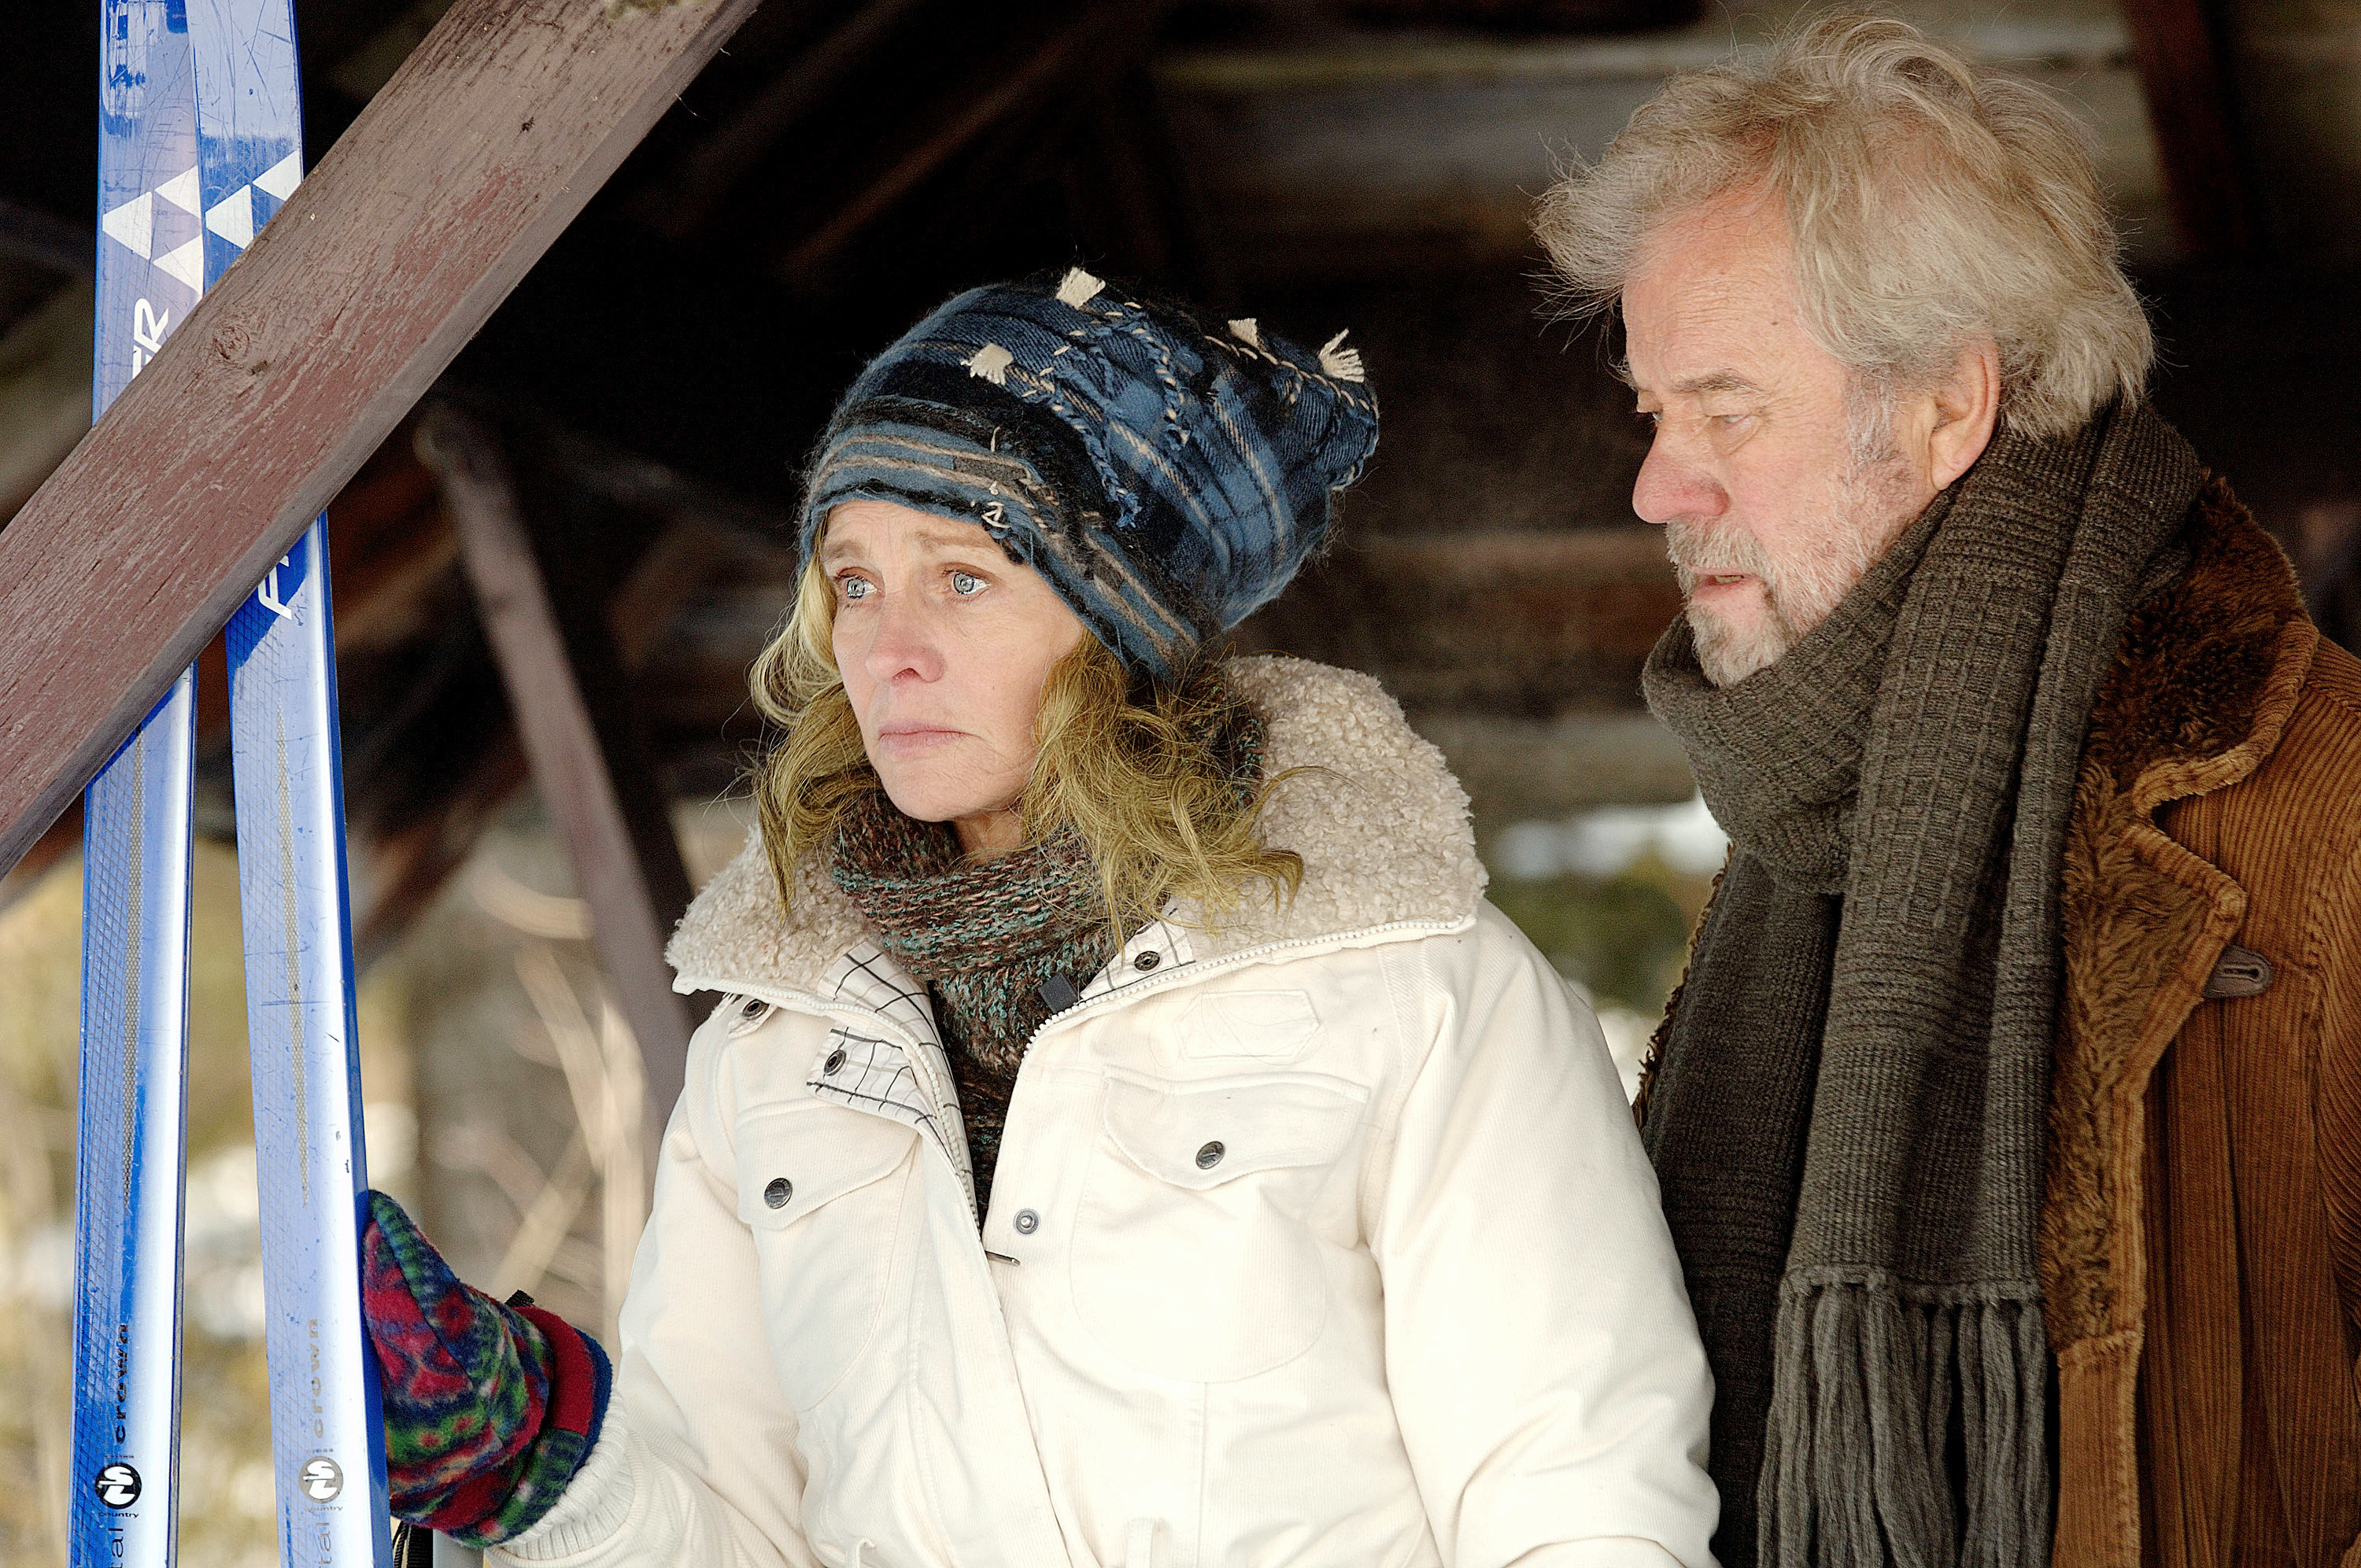 Julie Christie and Gordon Pinsent's characters standing together outside